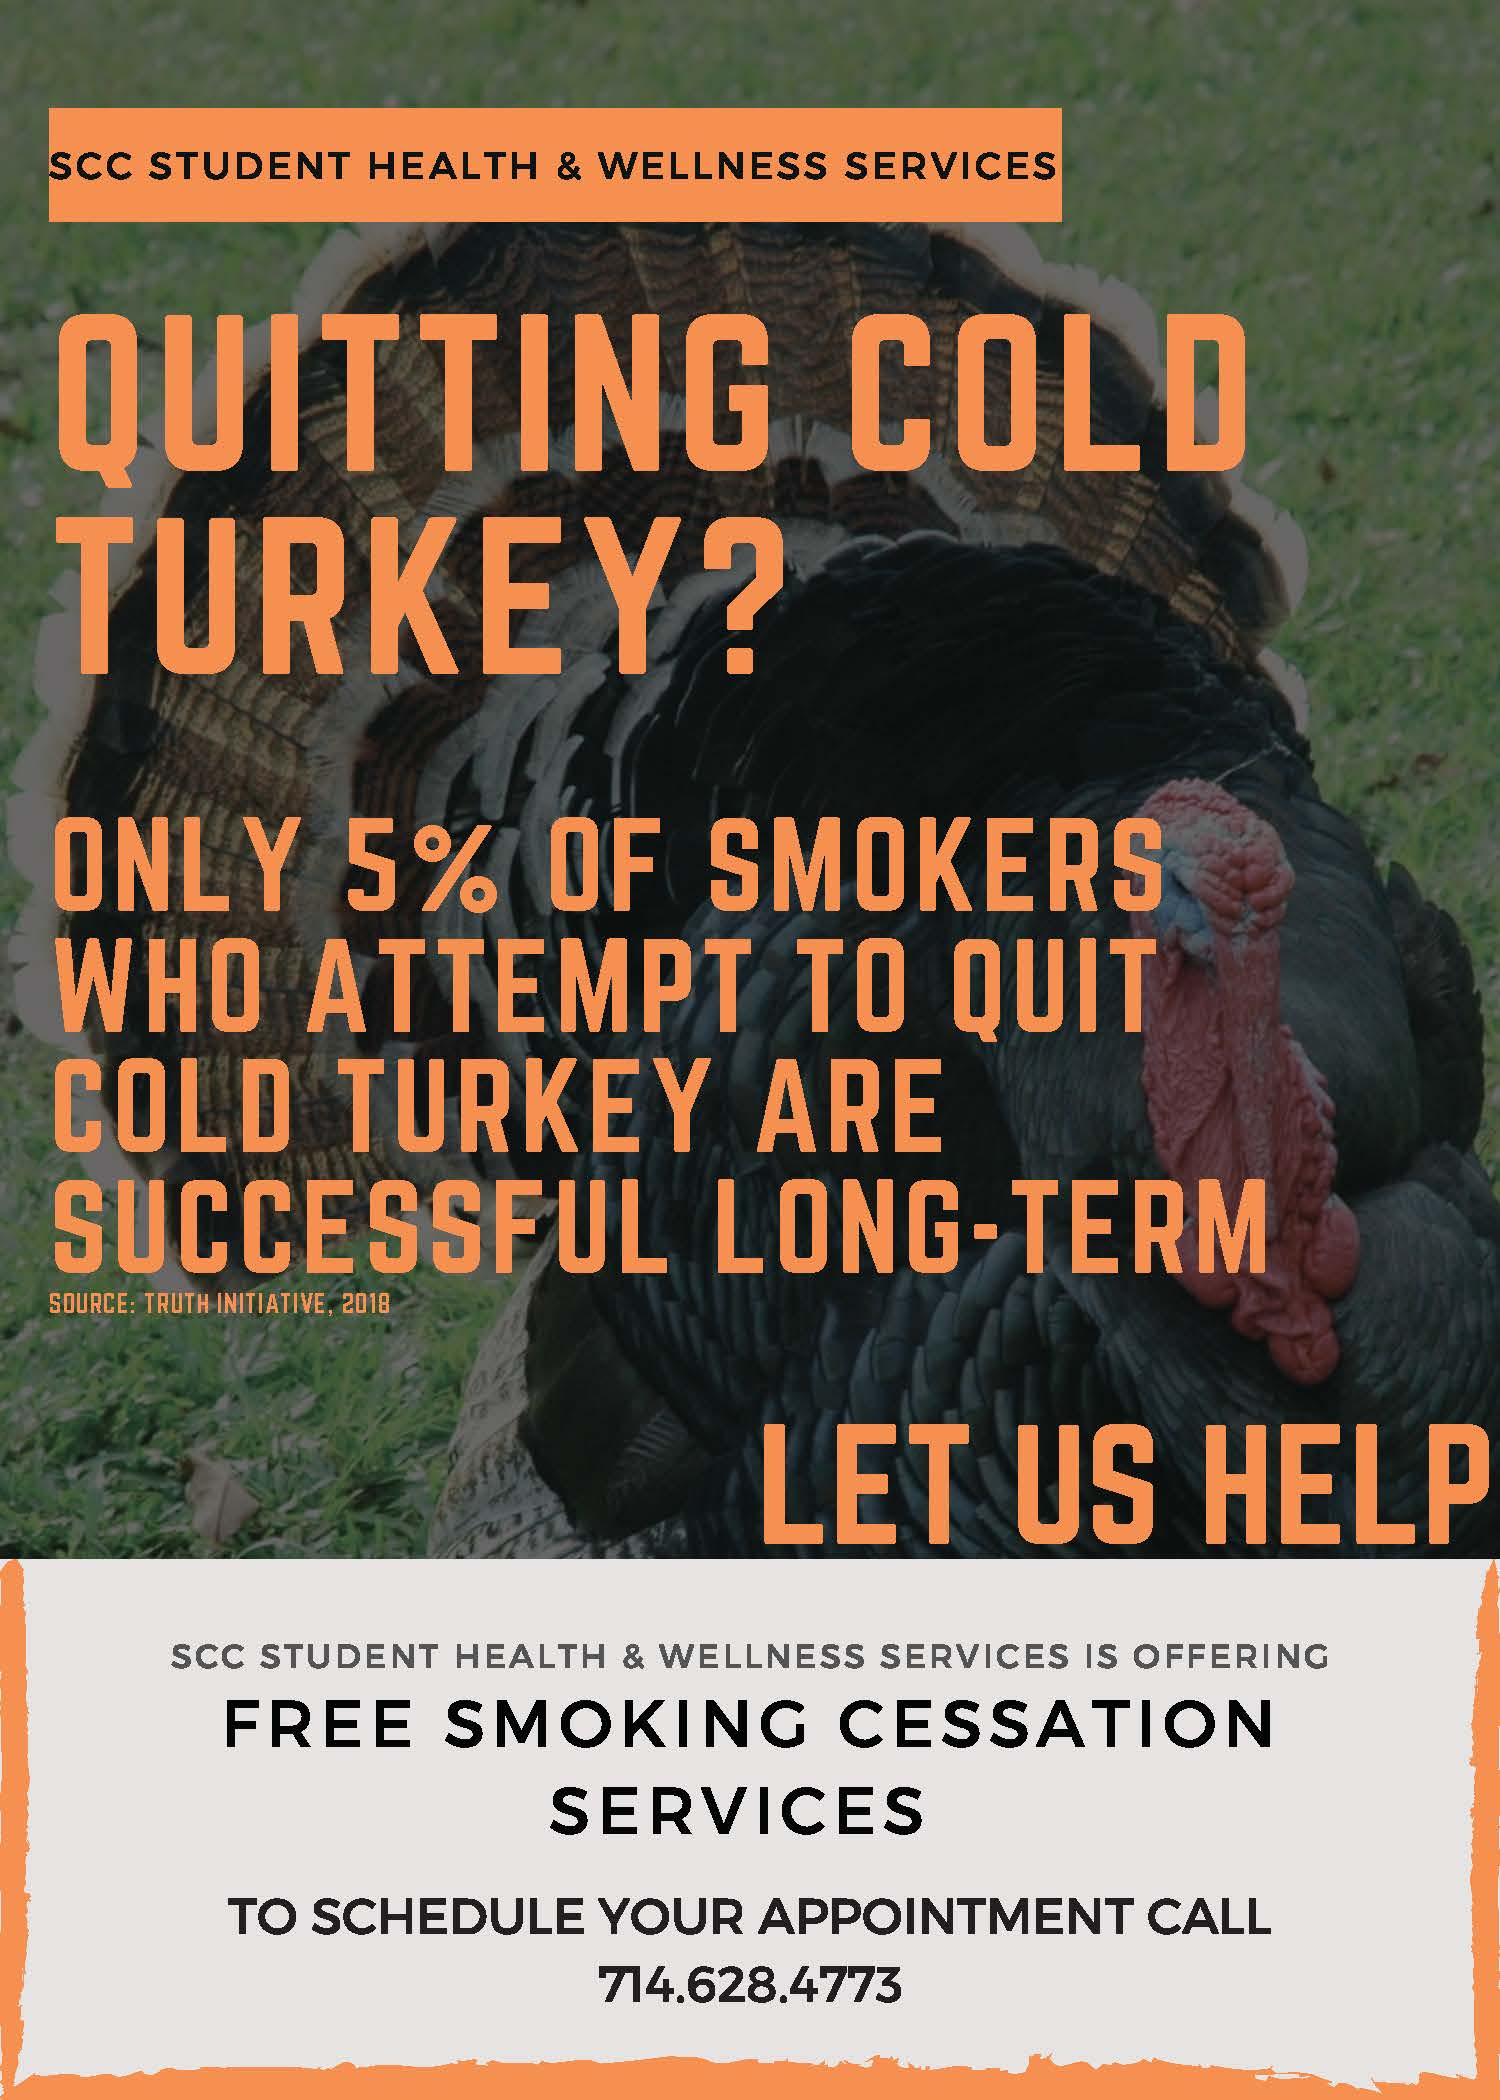 ONLY 5% OF SMOKERS WHO ATTEMPT TO QUIT COLD TURKEY ARE SUCCESSFUL LONG-TERM